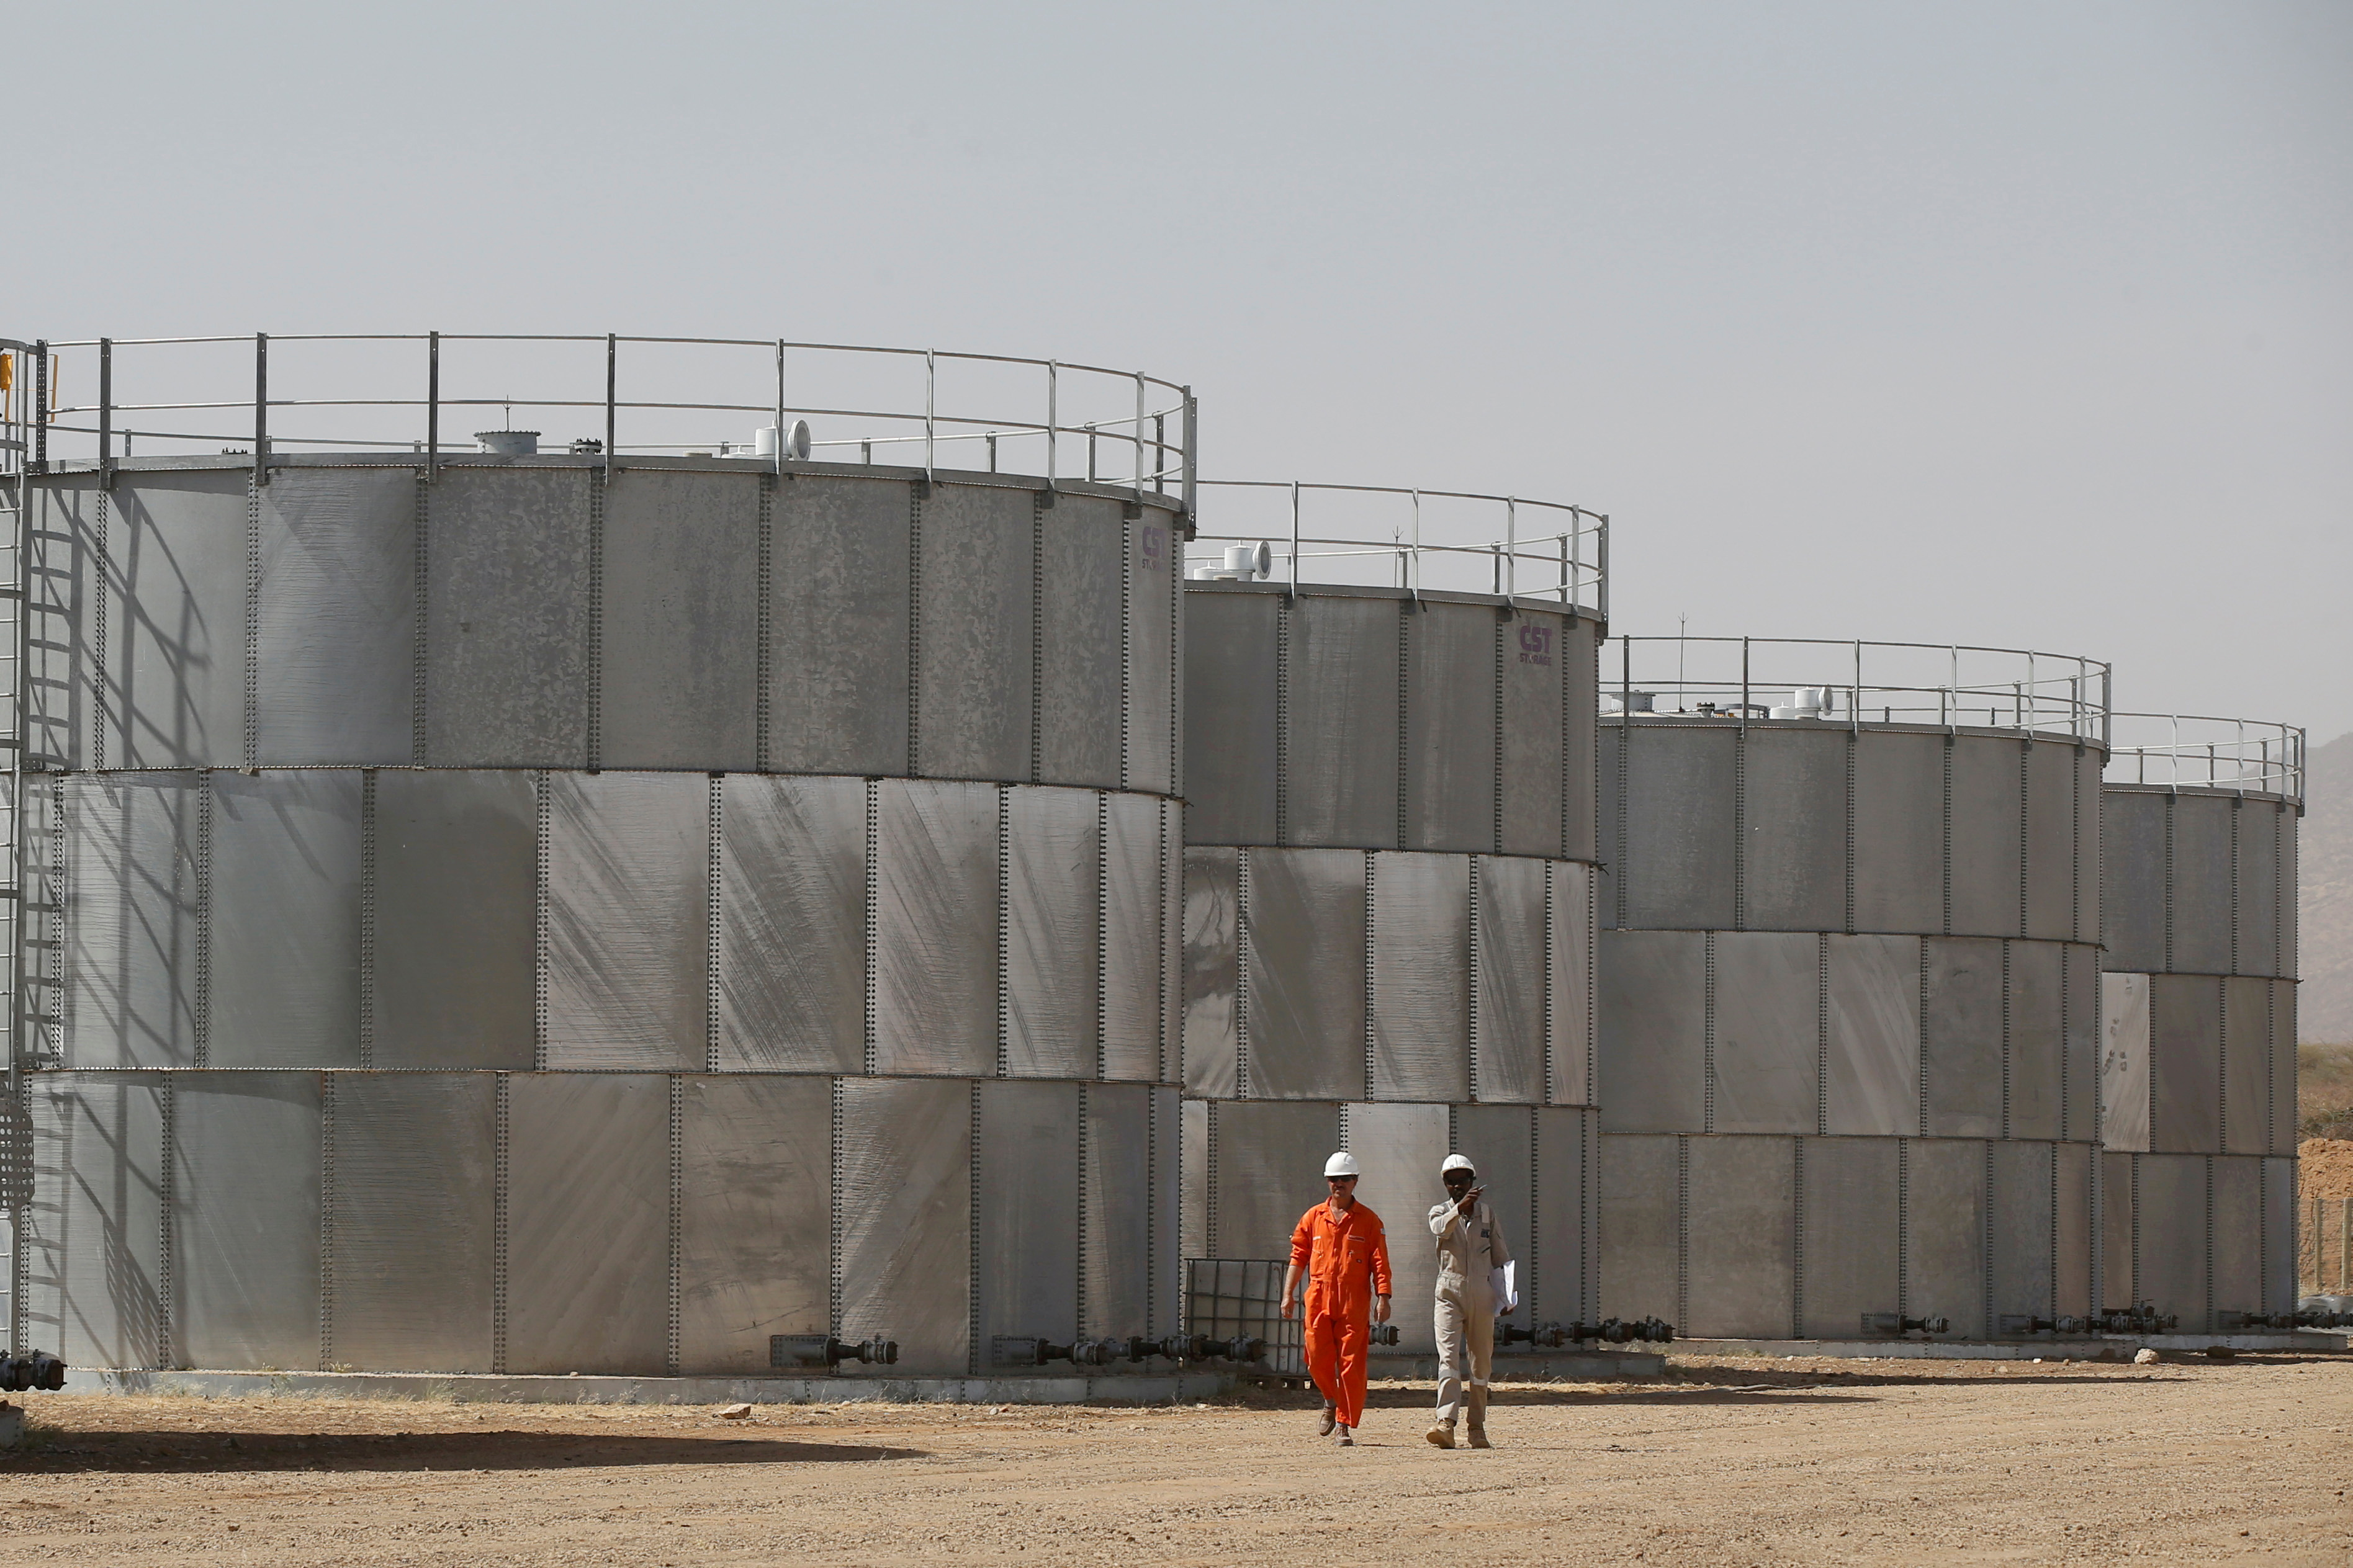 Workers walk past storage tanks at Tullow Oil's Ngamia 8 drilling site in Lokichar, Turkana County, Kenya, February 8, 2018. REUTERS/Baz Ratner/File Photo